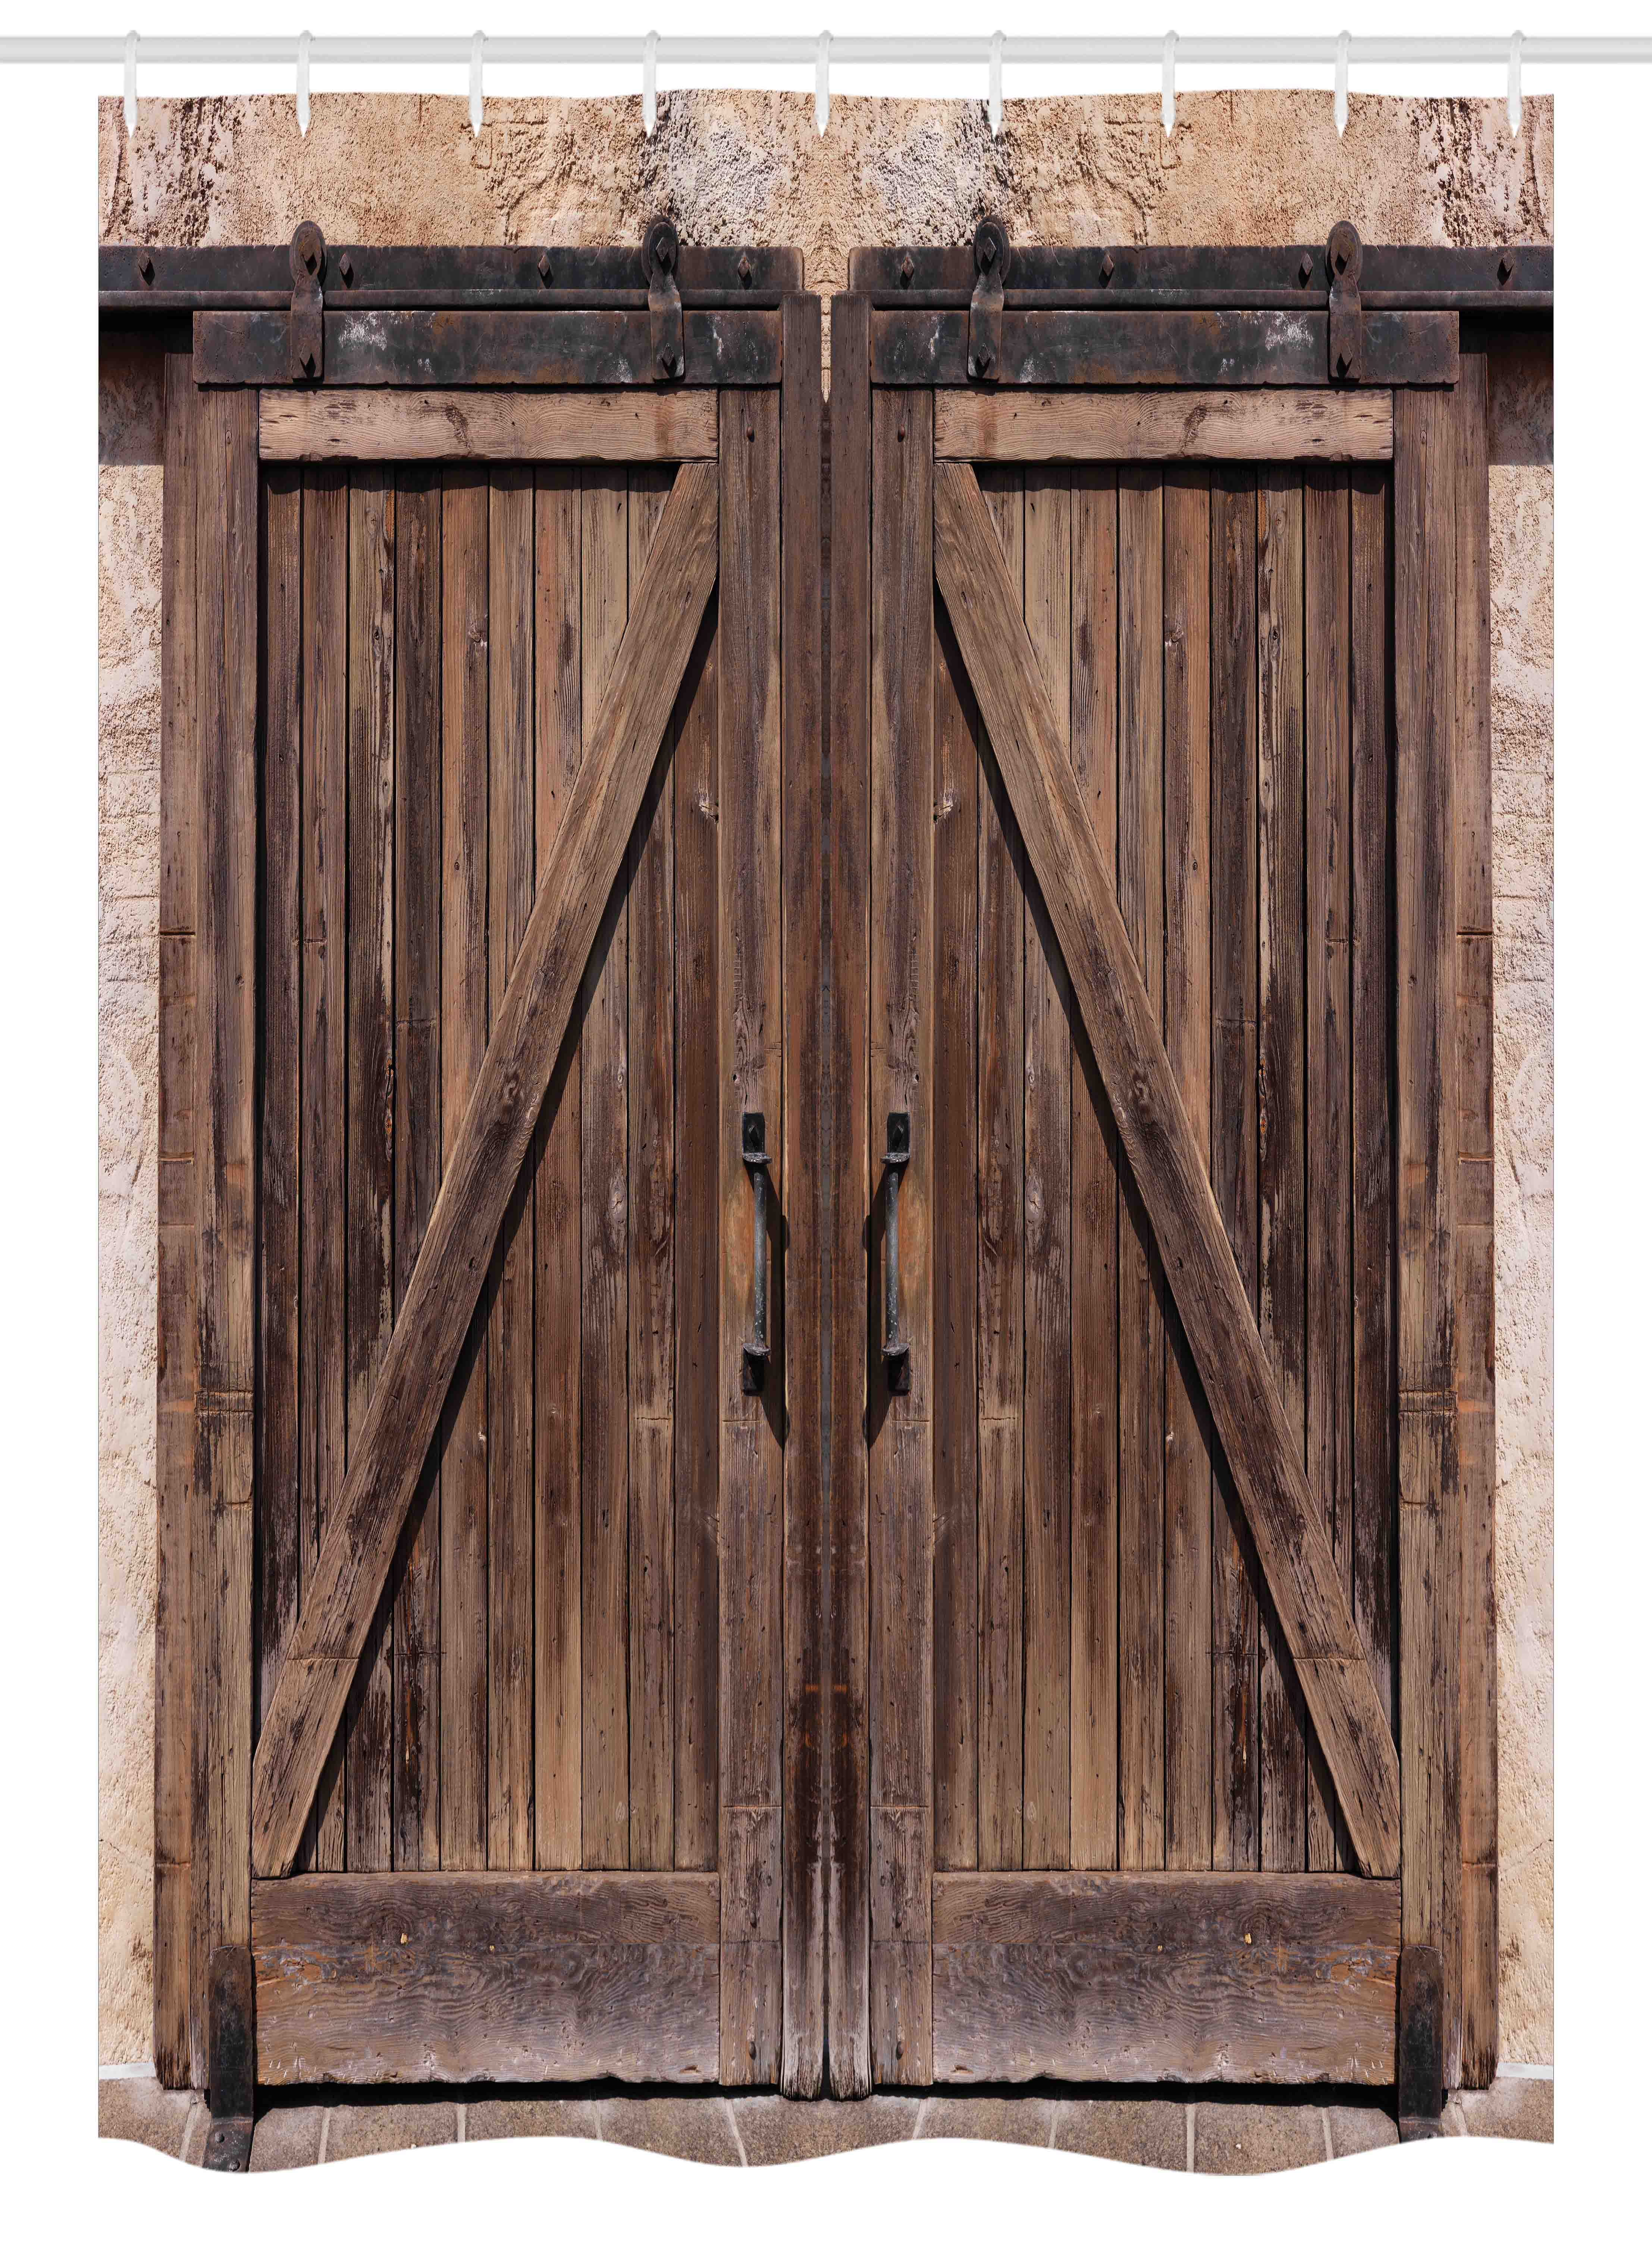 Rustic Stall Shower Curtain, Wooden Barn Door in Stone Farmhouse ...